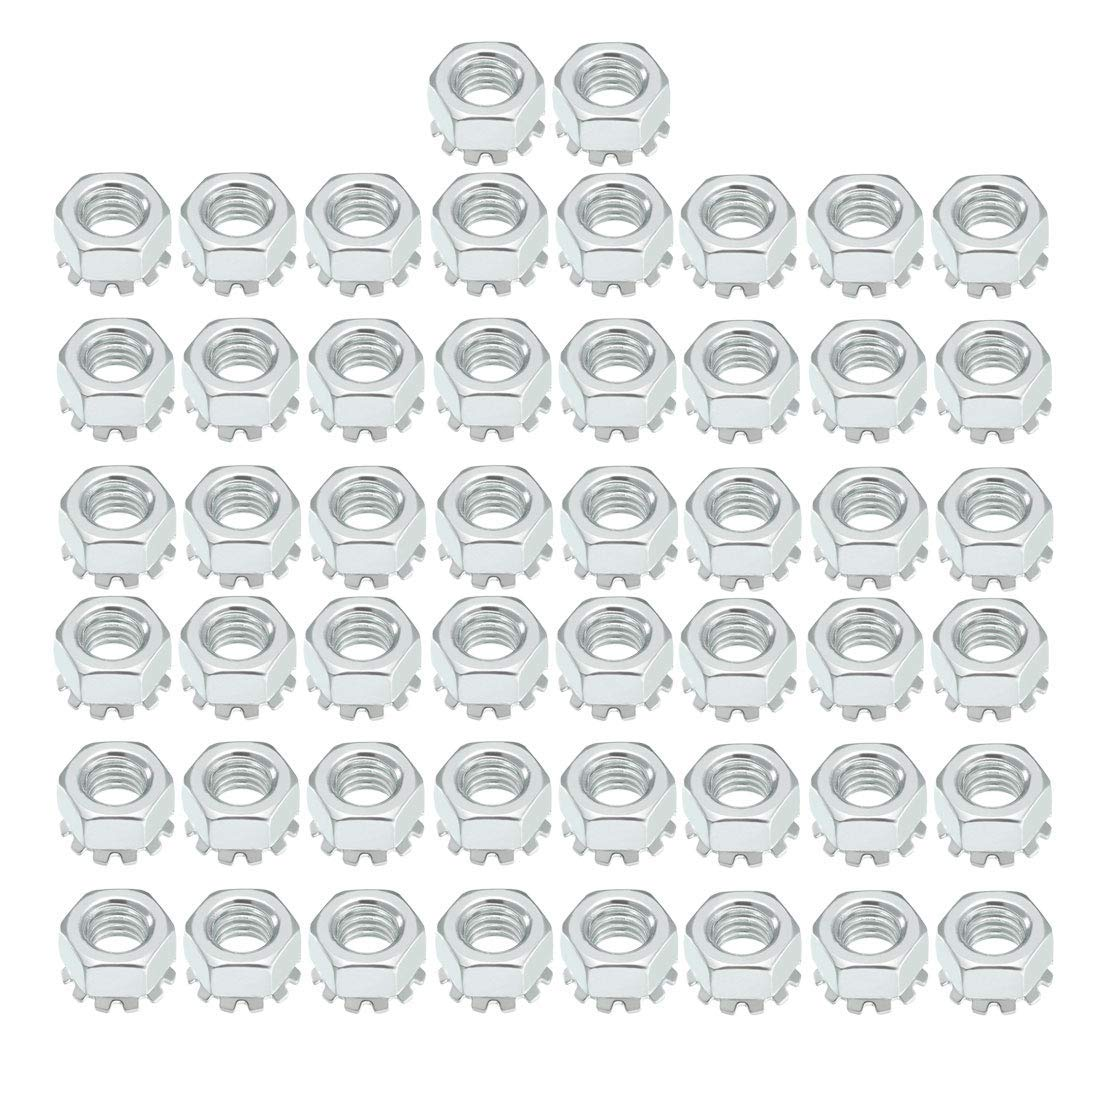 M8 X 1.25 Step Carbon Steel Female Thread Kep Hexagon Head nut Nut 50 Pieces